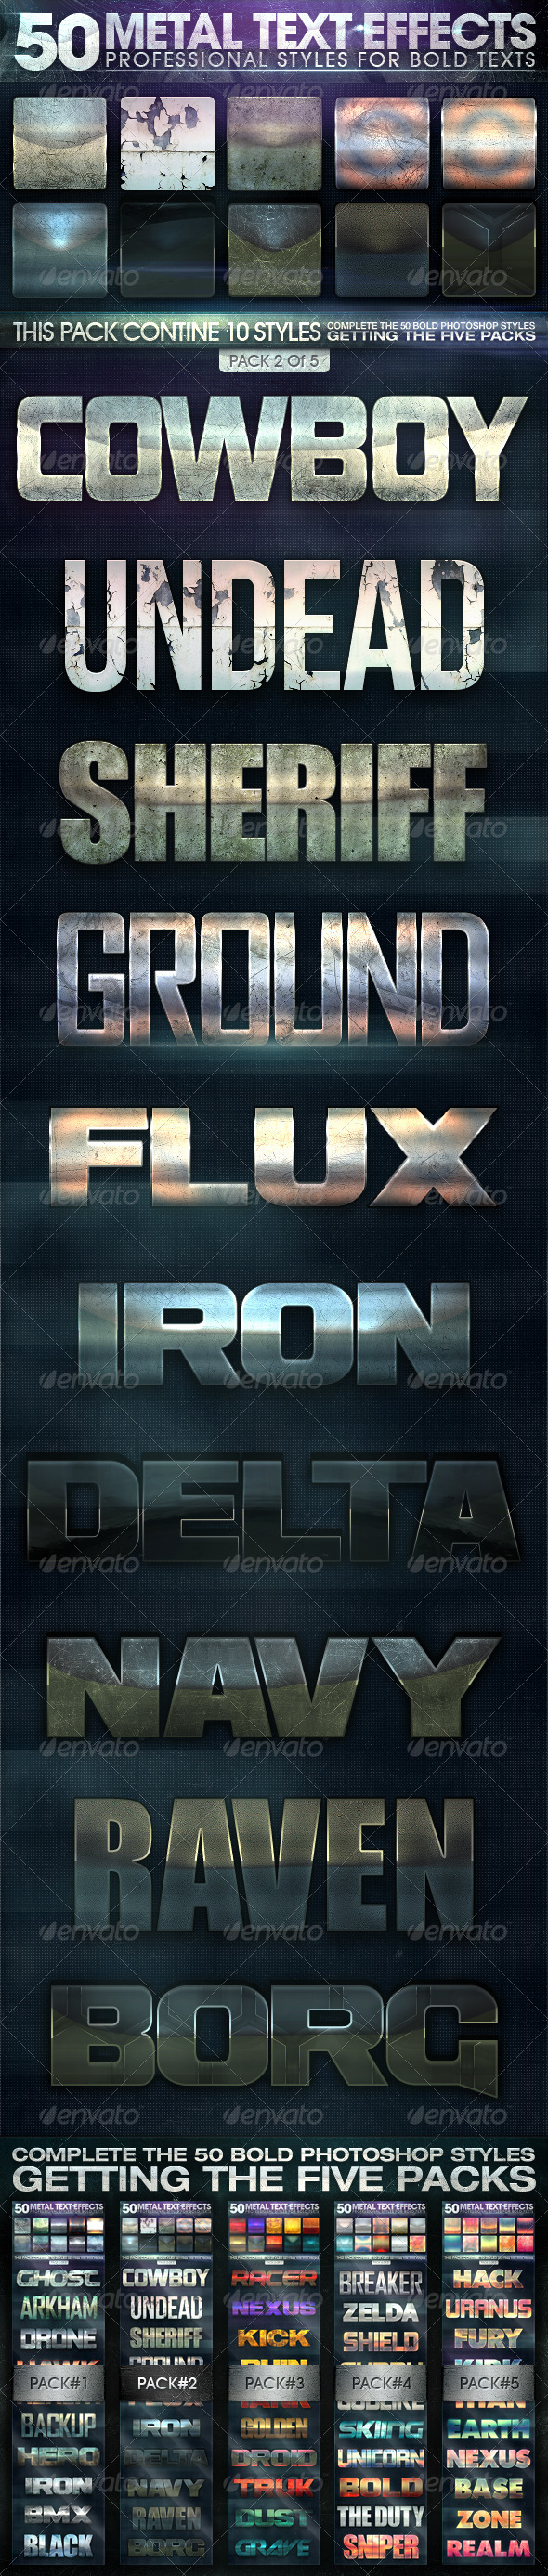 GraphicRiver 50 Metal Text Effects 2 of 5 7300285